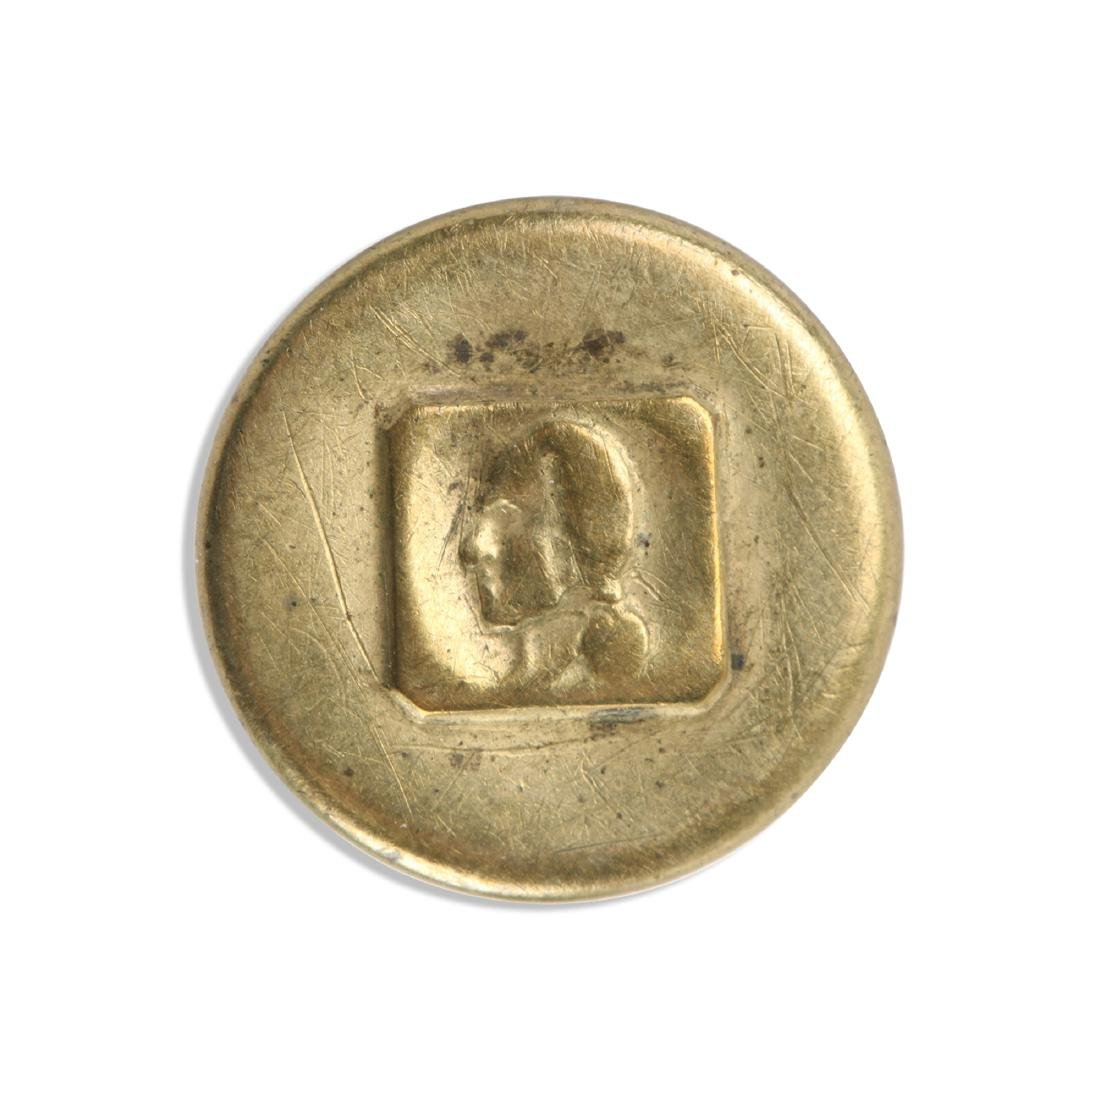 Early US Political Commemorative Button